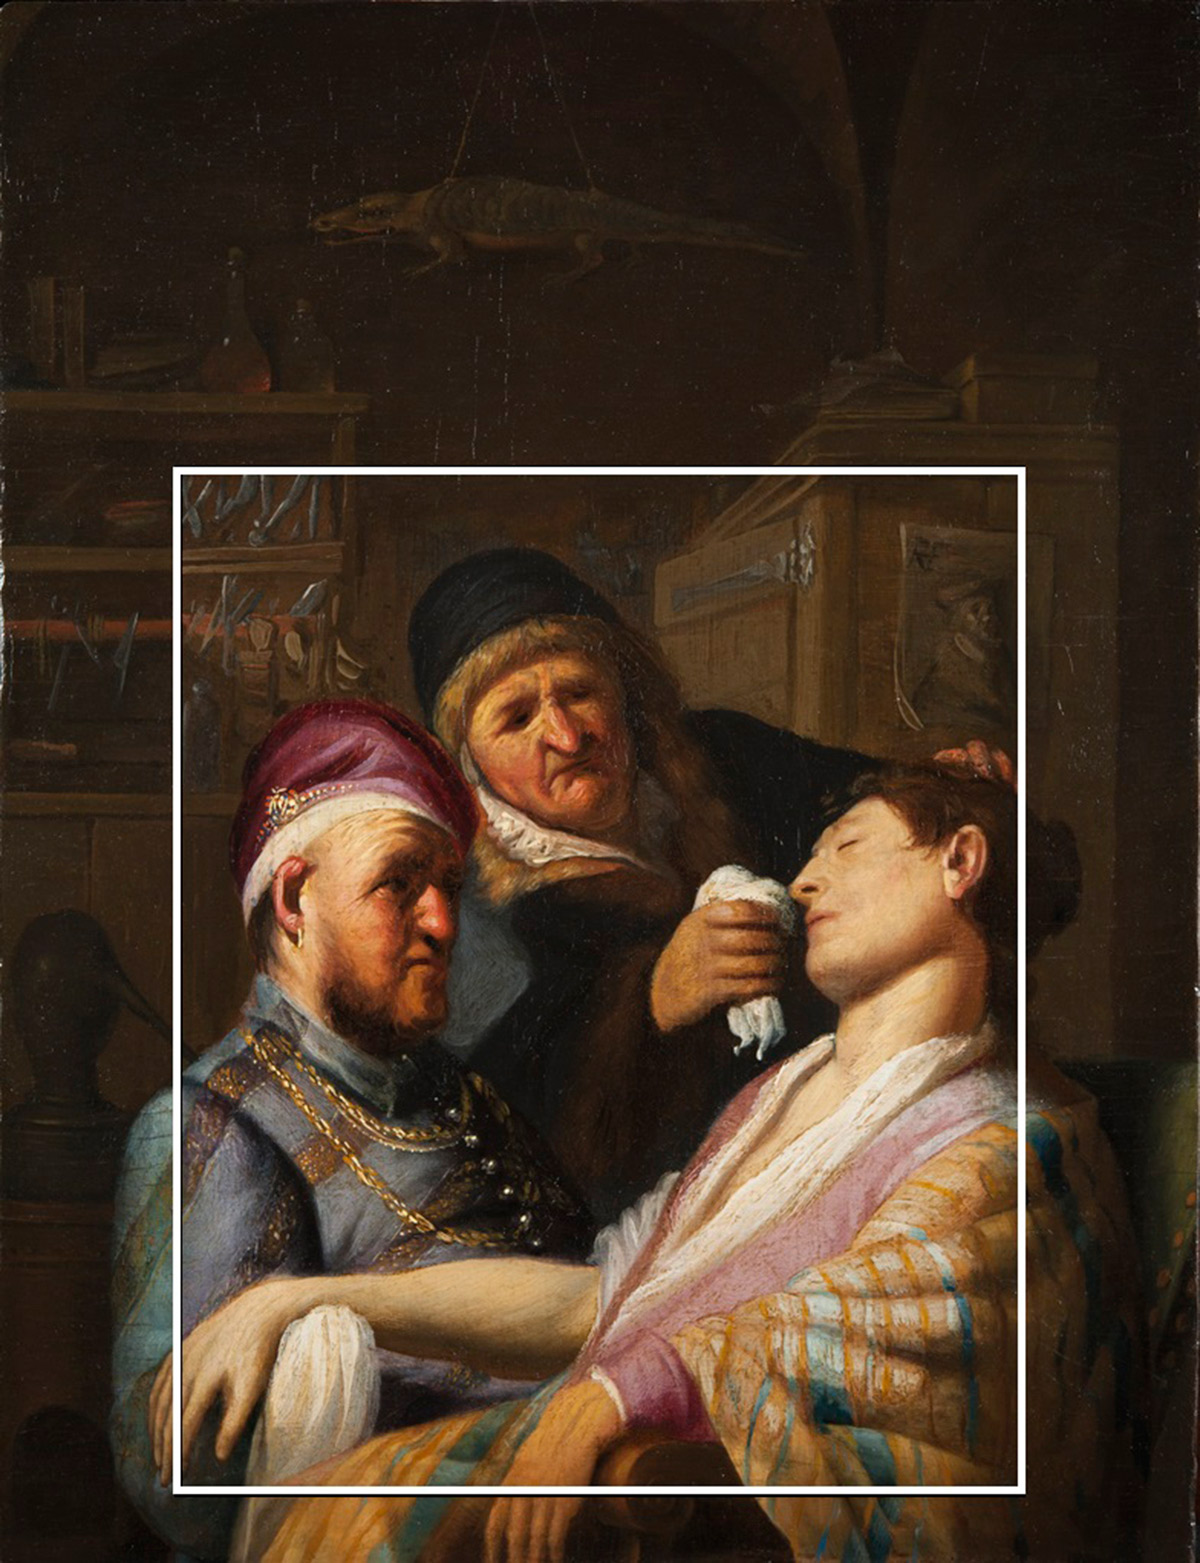 Rembrandt's Smell showing the larger panel surround added in the 1700s